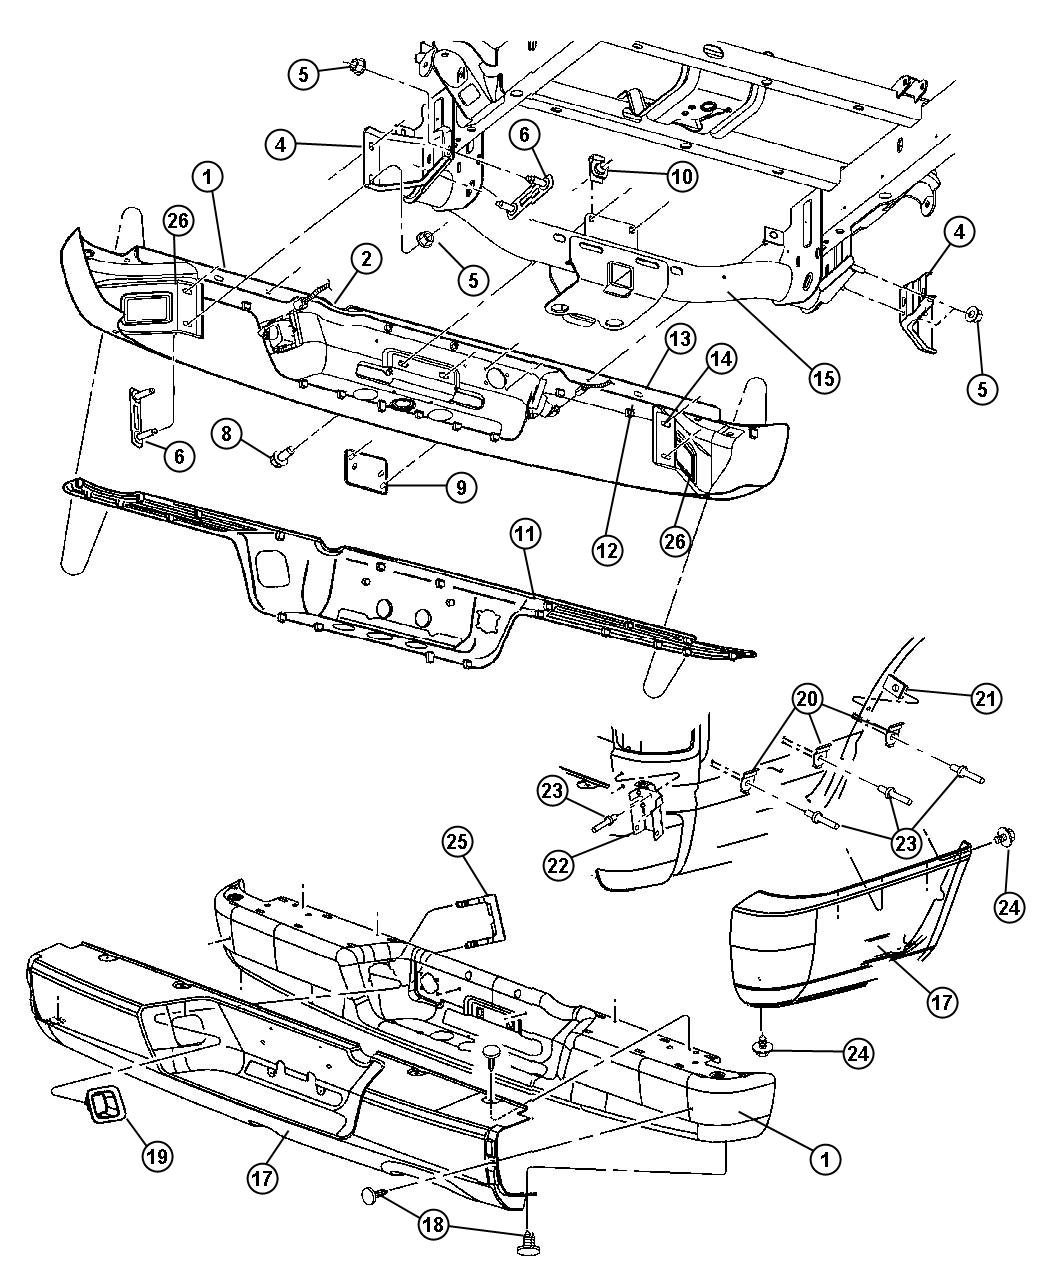 2004 Dodge Ram Parts Diagram, 2004, Free Engine Image For